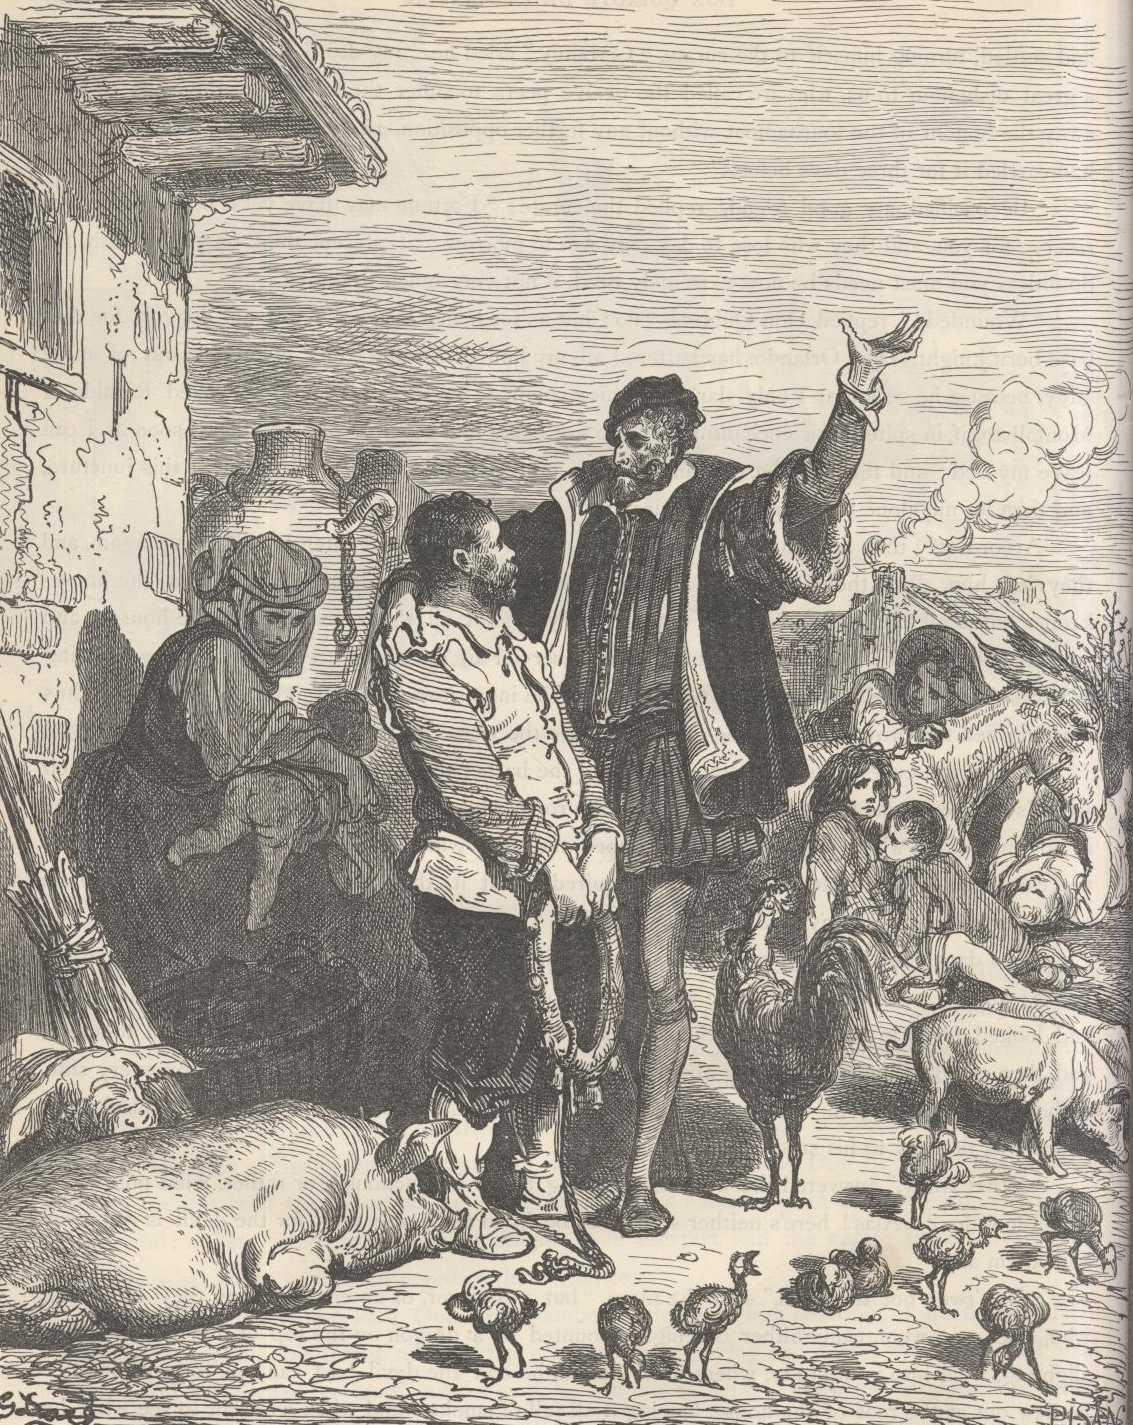 essay on don quixote Don juan the sedcuer essay in the legend, don juan is a famous lover and scoundrel who has made more than a thousand sexual conquests while preparing to seduce the young noble lady donna ana, he is discovered by her father, the commander, who challenges him to a duel.